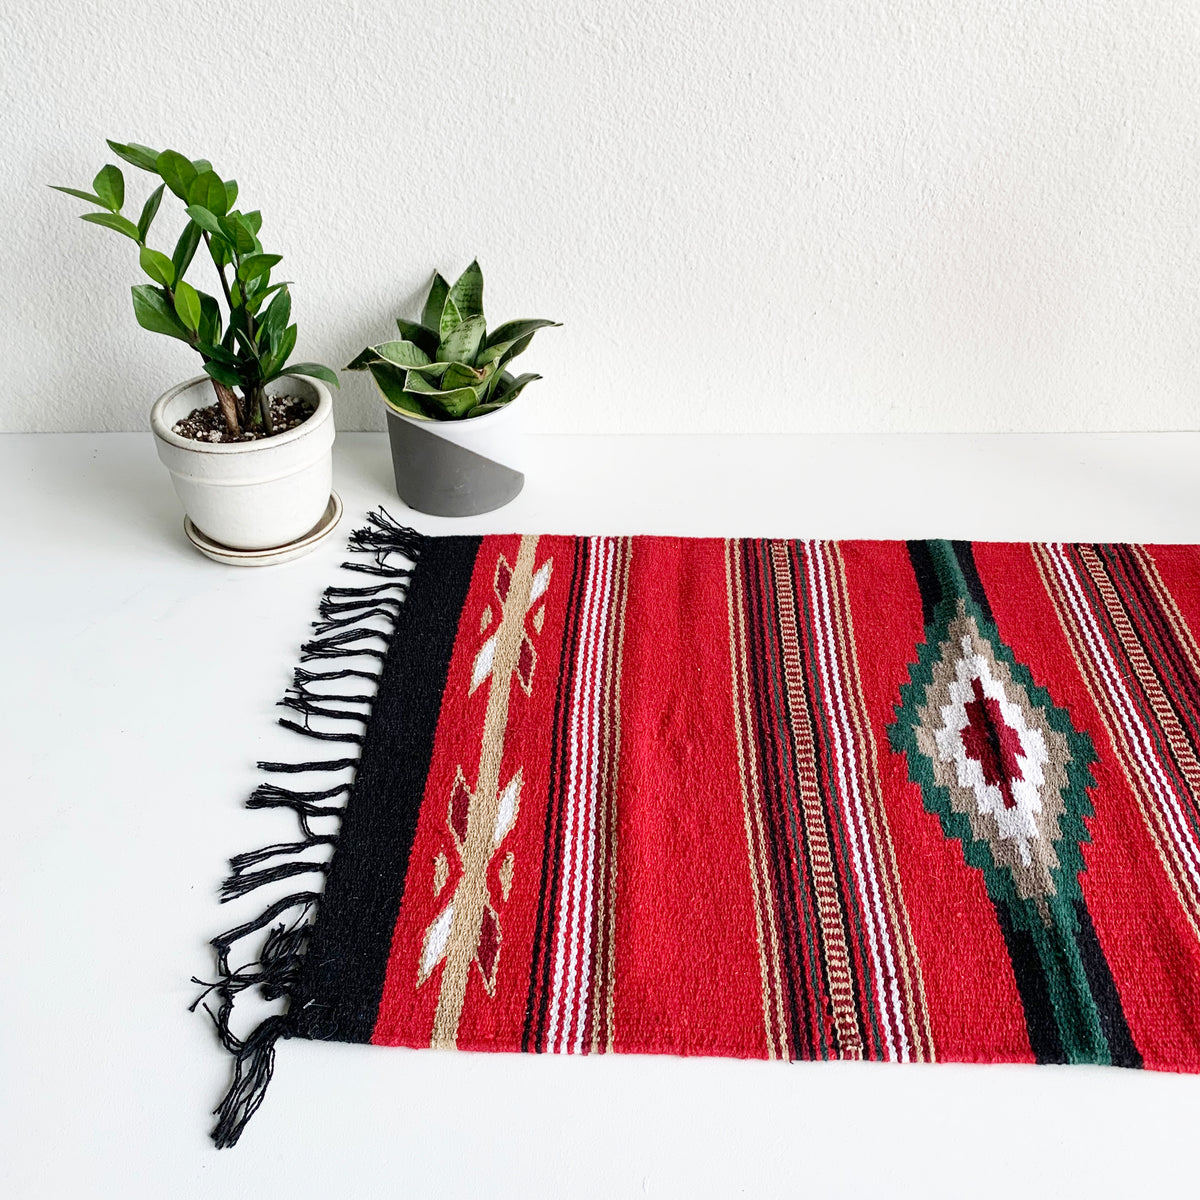 Black Fringe Rug in Red